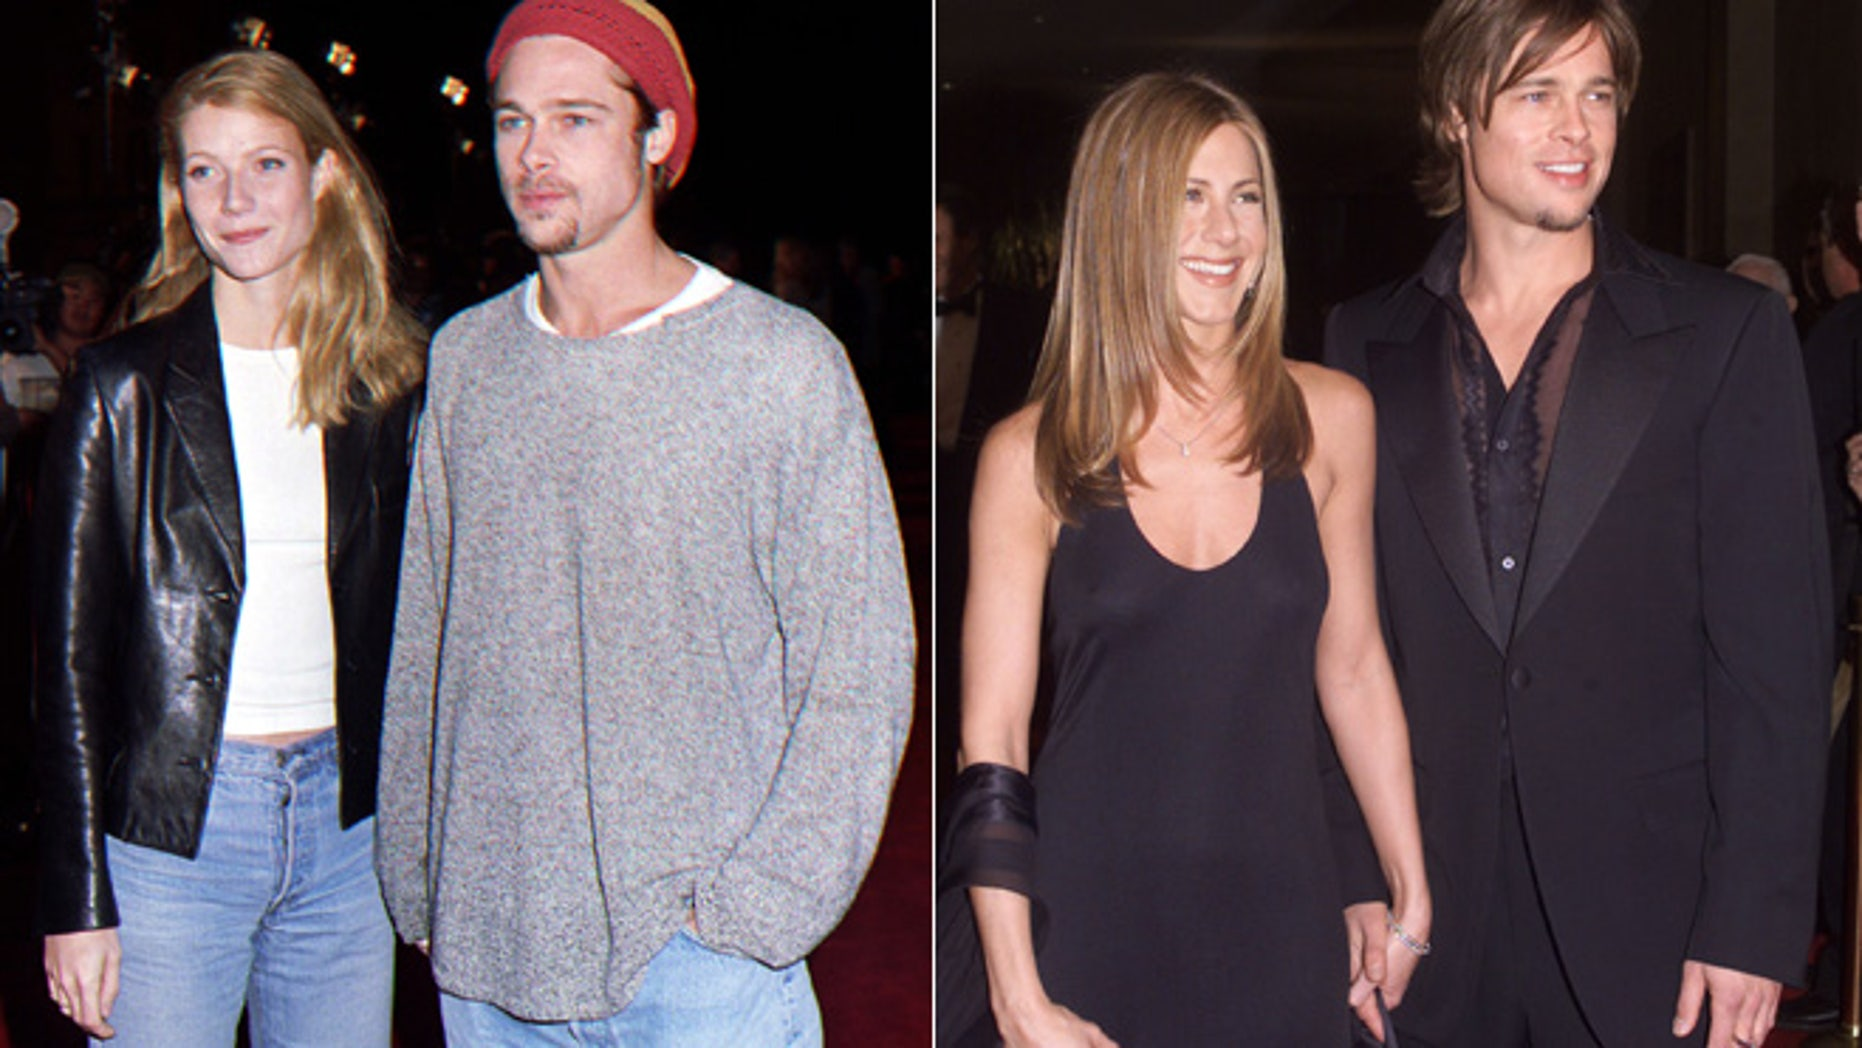 Gwyneth Paltrow, left, and Jennifer Aniston, right, appear with Brad Pitt.